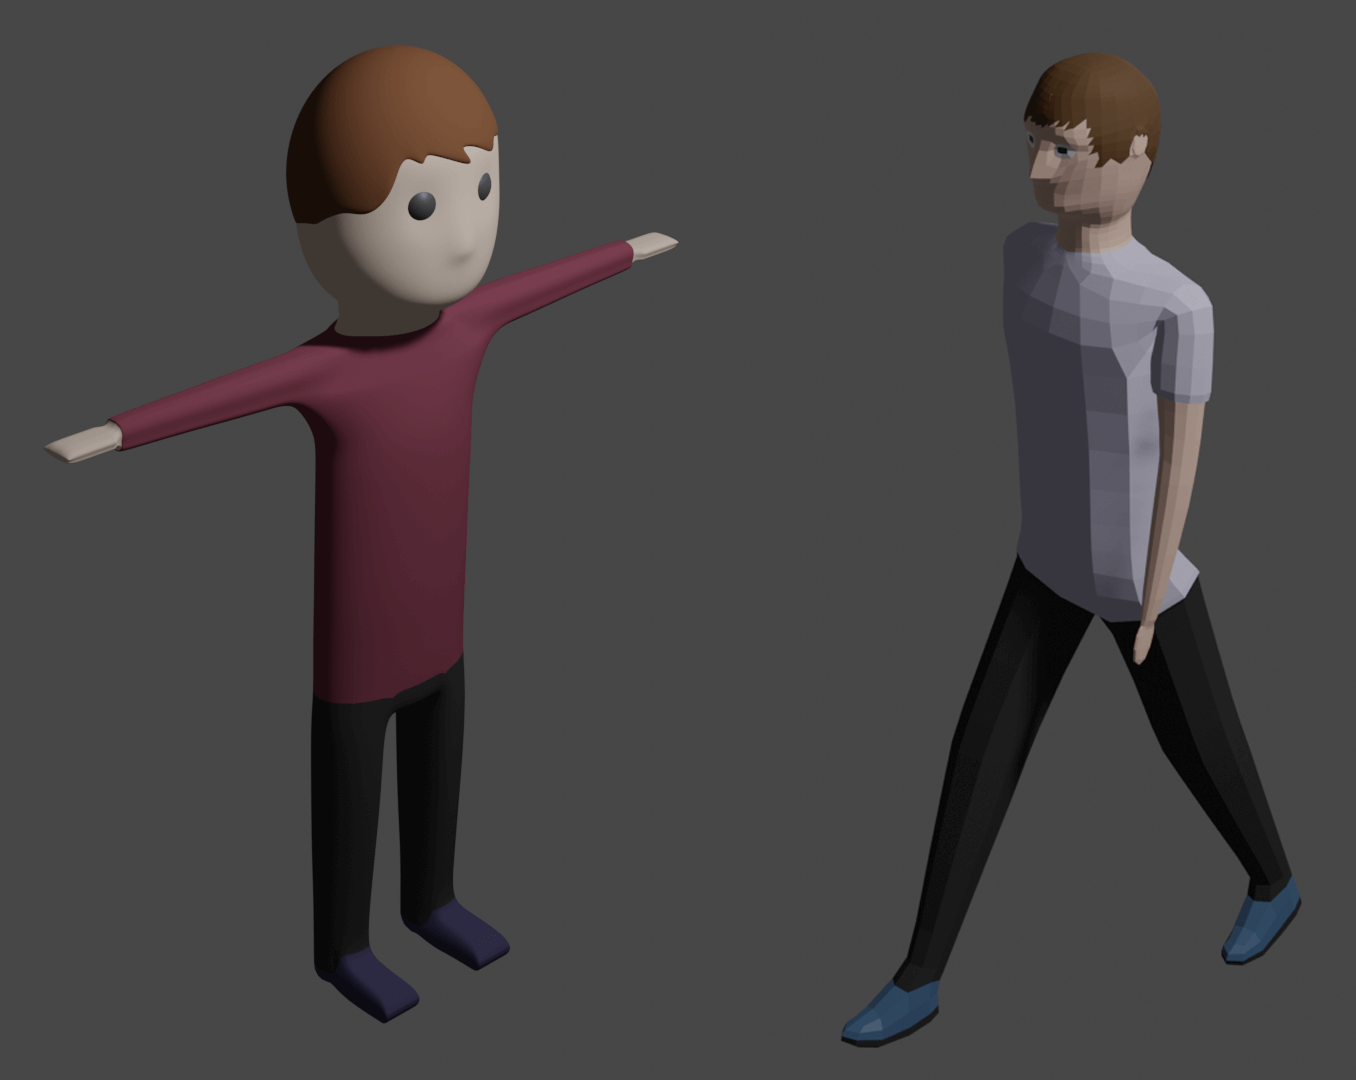 Two 3D characters